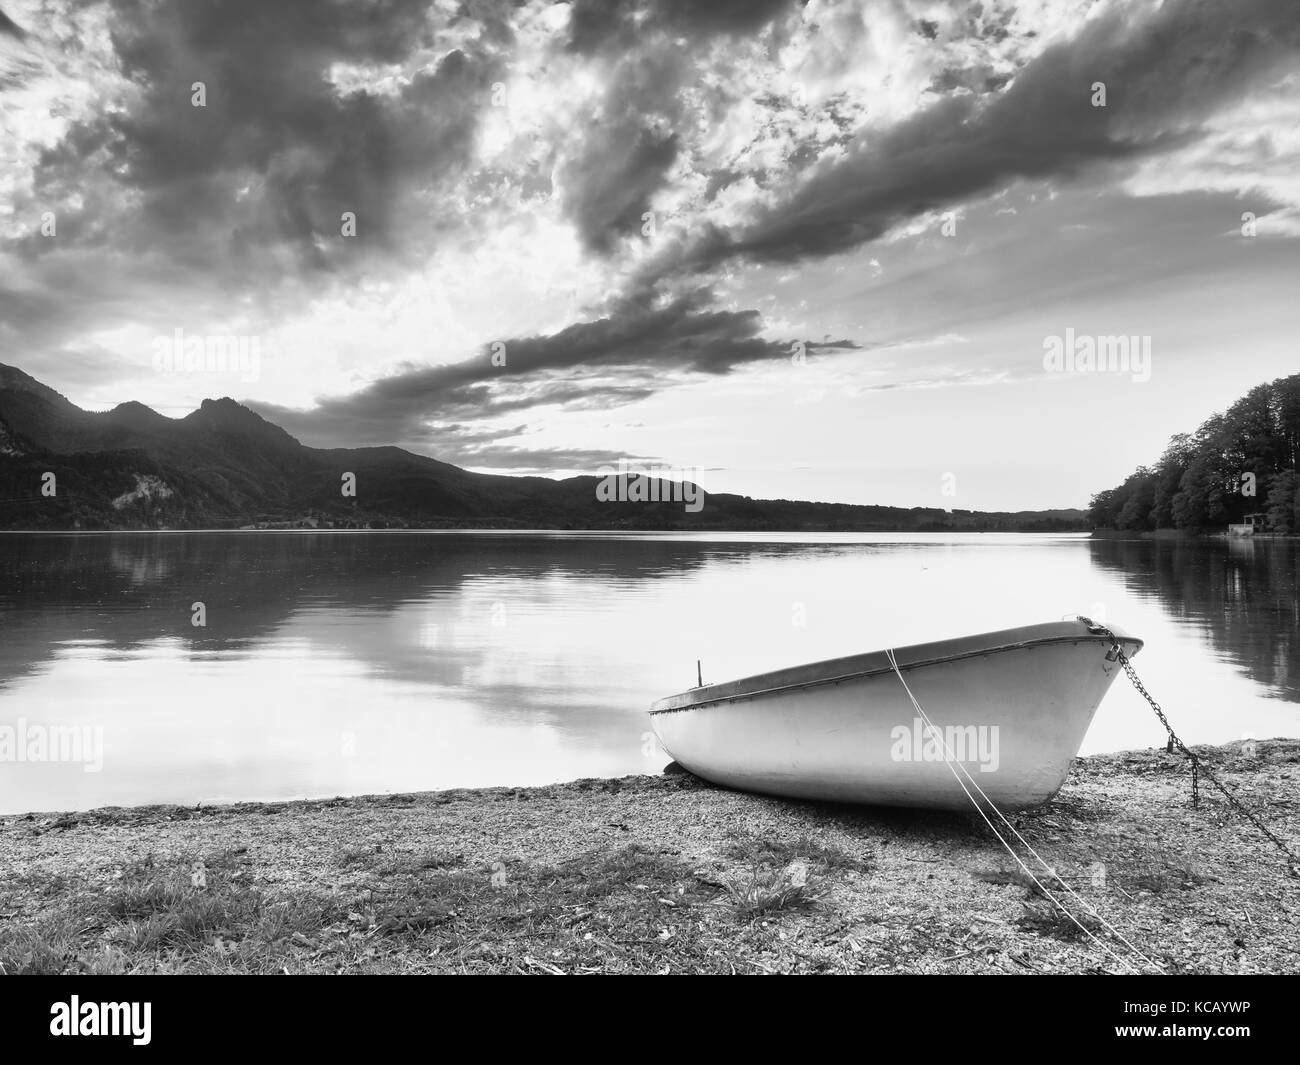 Abandoned white paddle boat on Alps lake bank. Evening lake glowing by sunlight. Dramatic and picturesque scene. - Stock Image